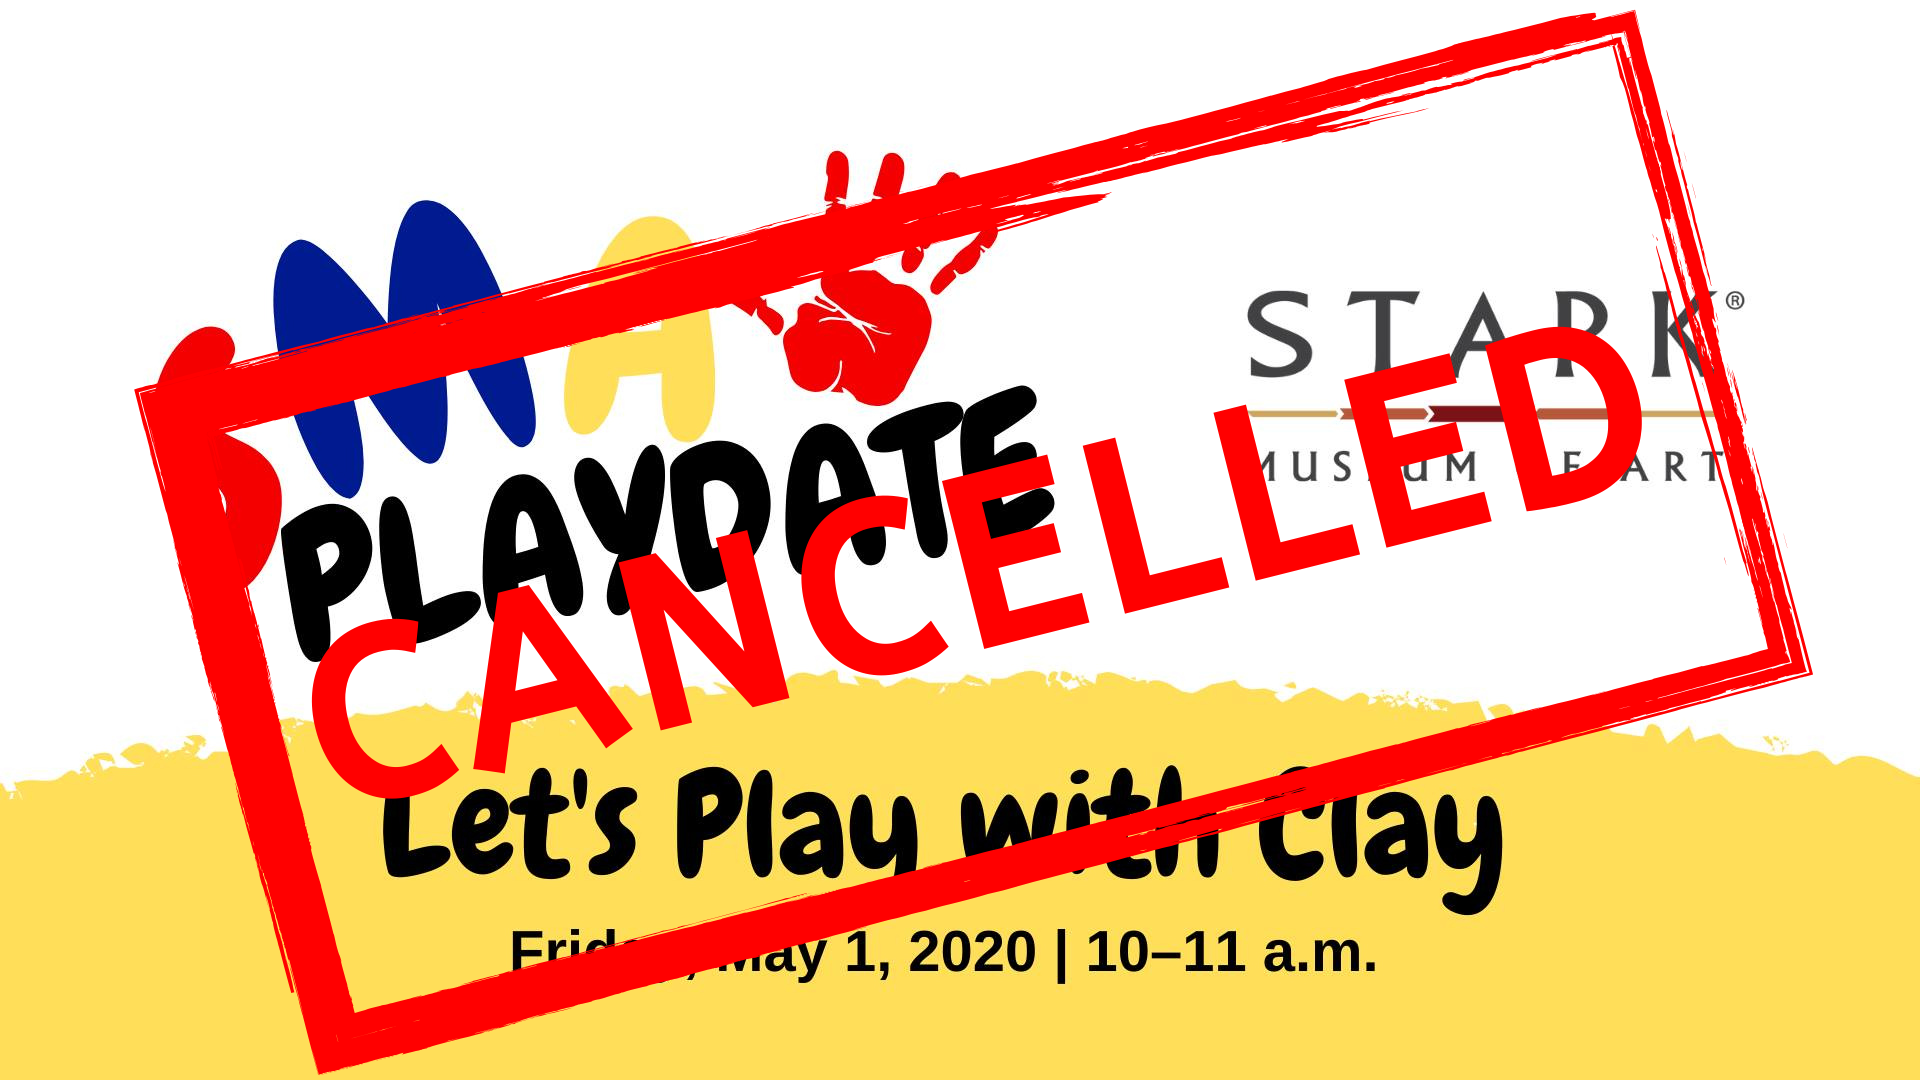 SMA Playdate: Let's Play with Clay